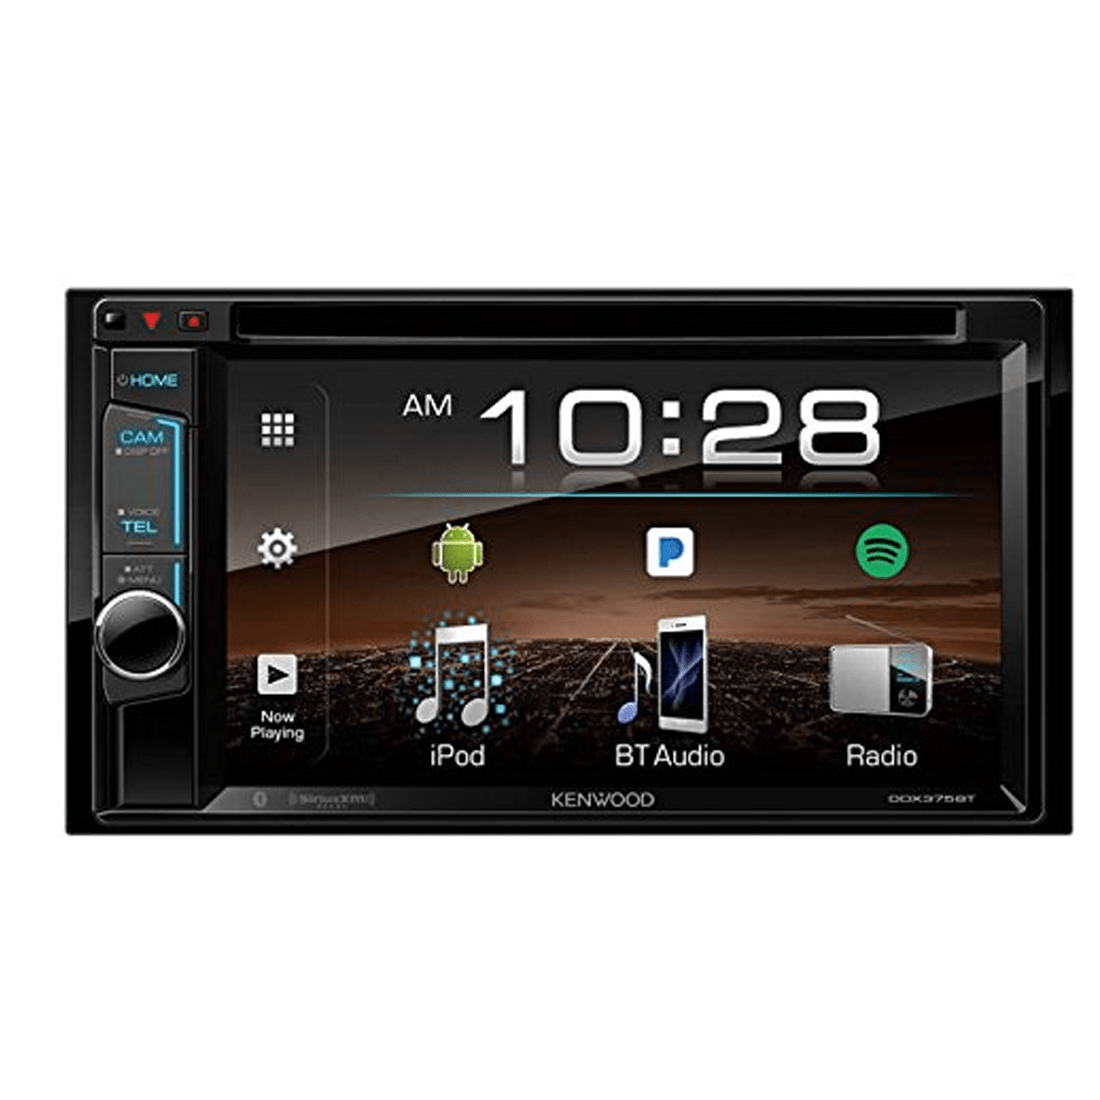 kenwood ddx 375bt 2 din monitor receiver with bluetooth. Black Bedroom Furniture Sets. Home Design Ideas